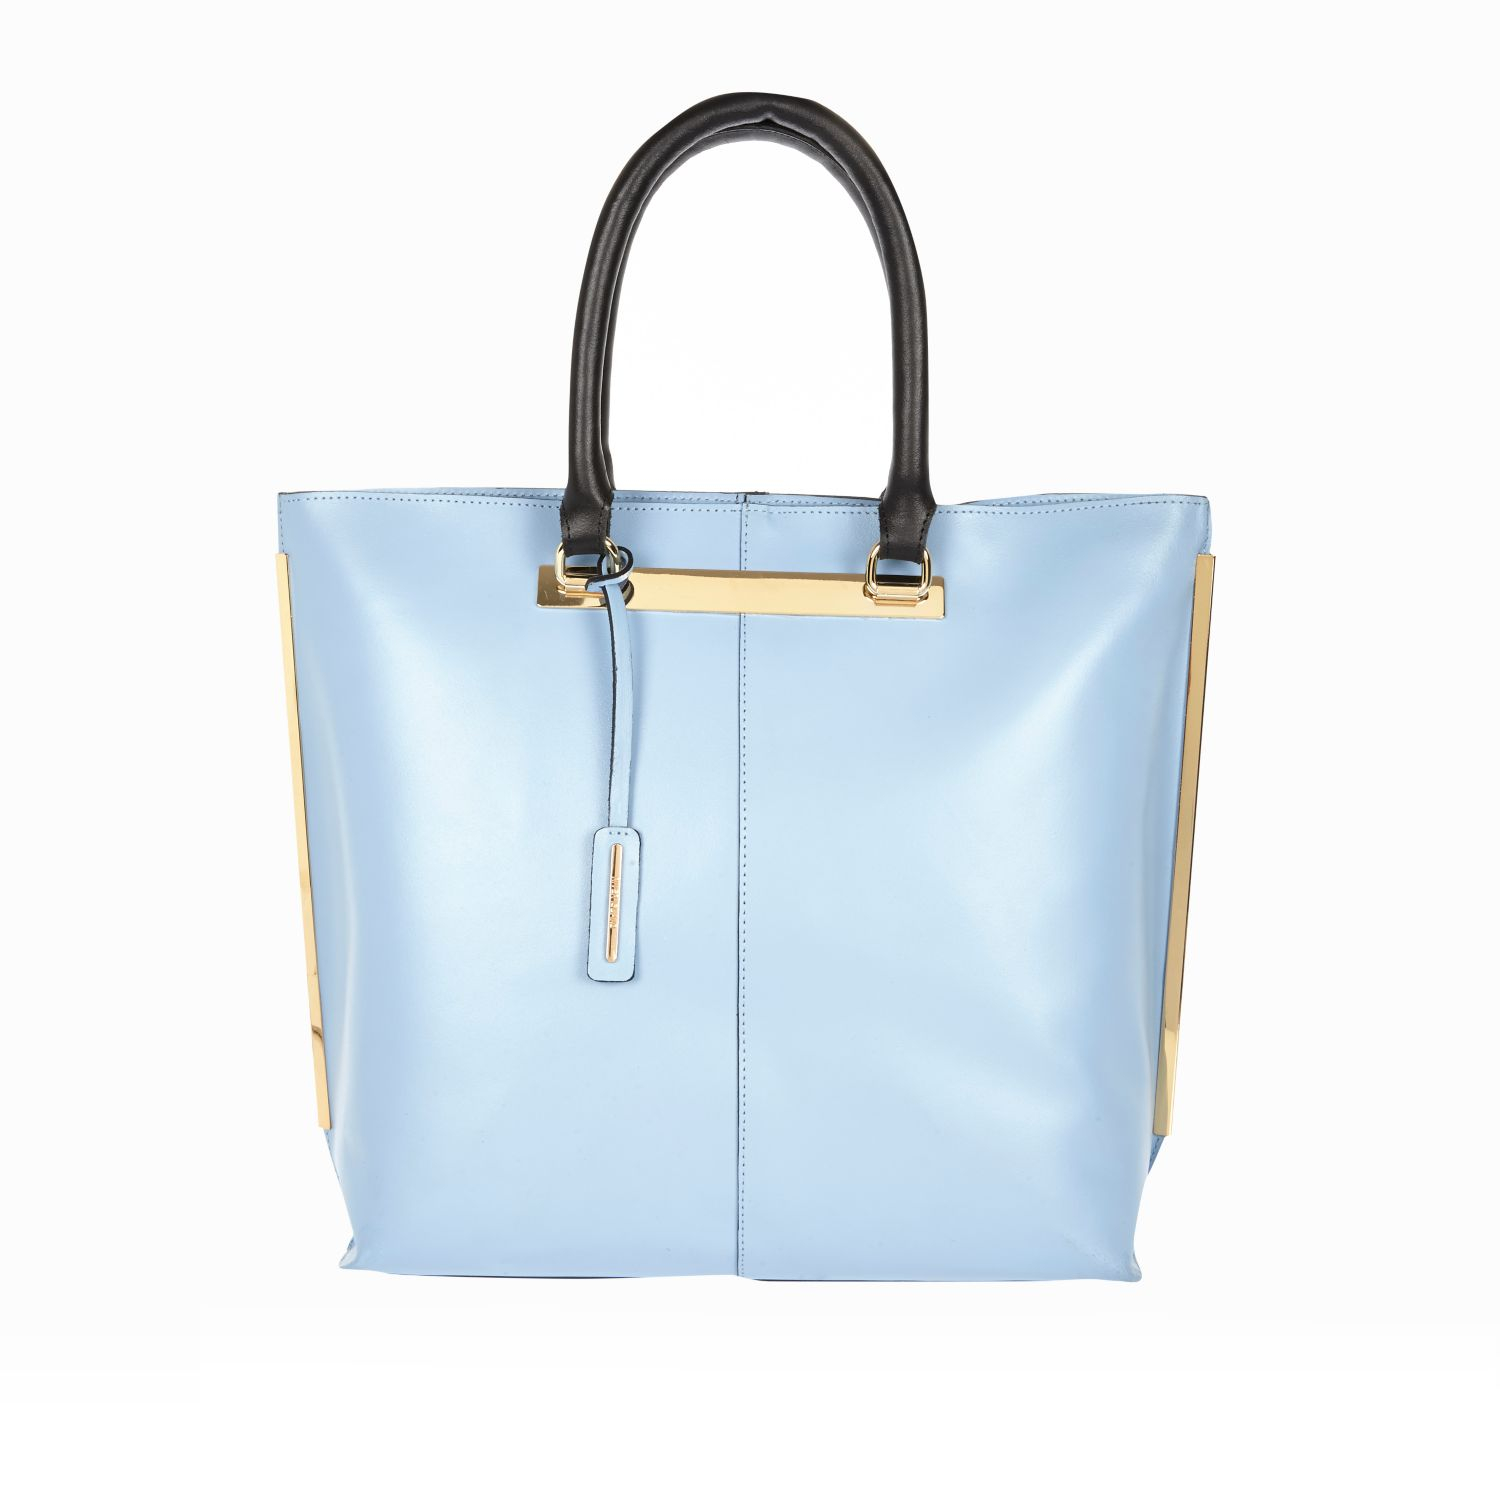 River Island Light Blue Leather Metal Trim Tote Bag in Blue